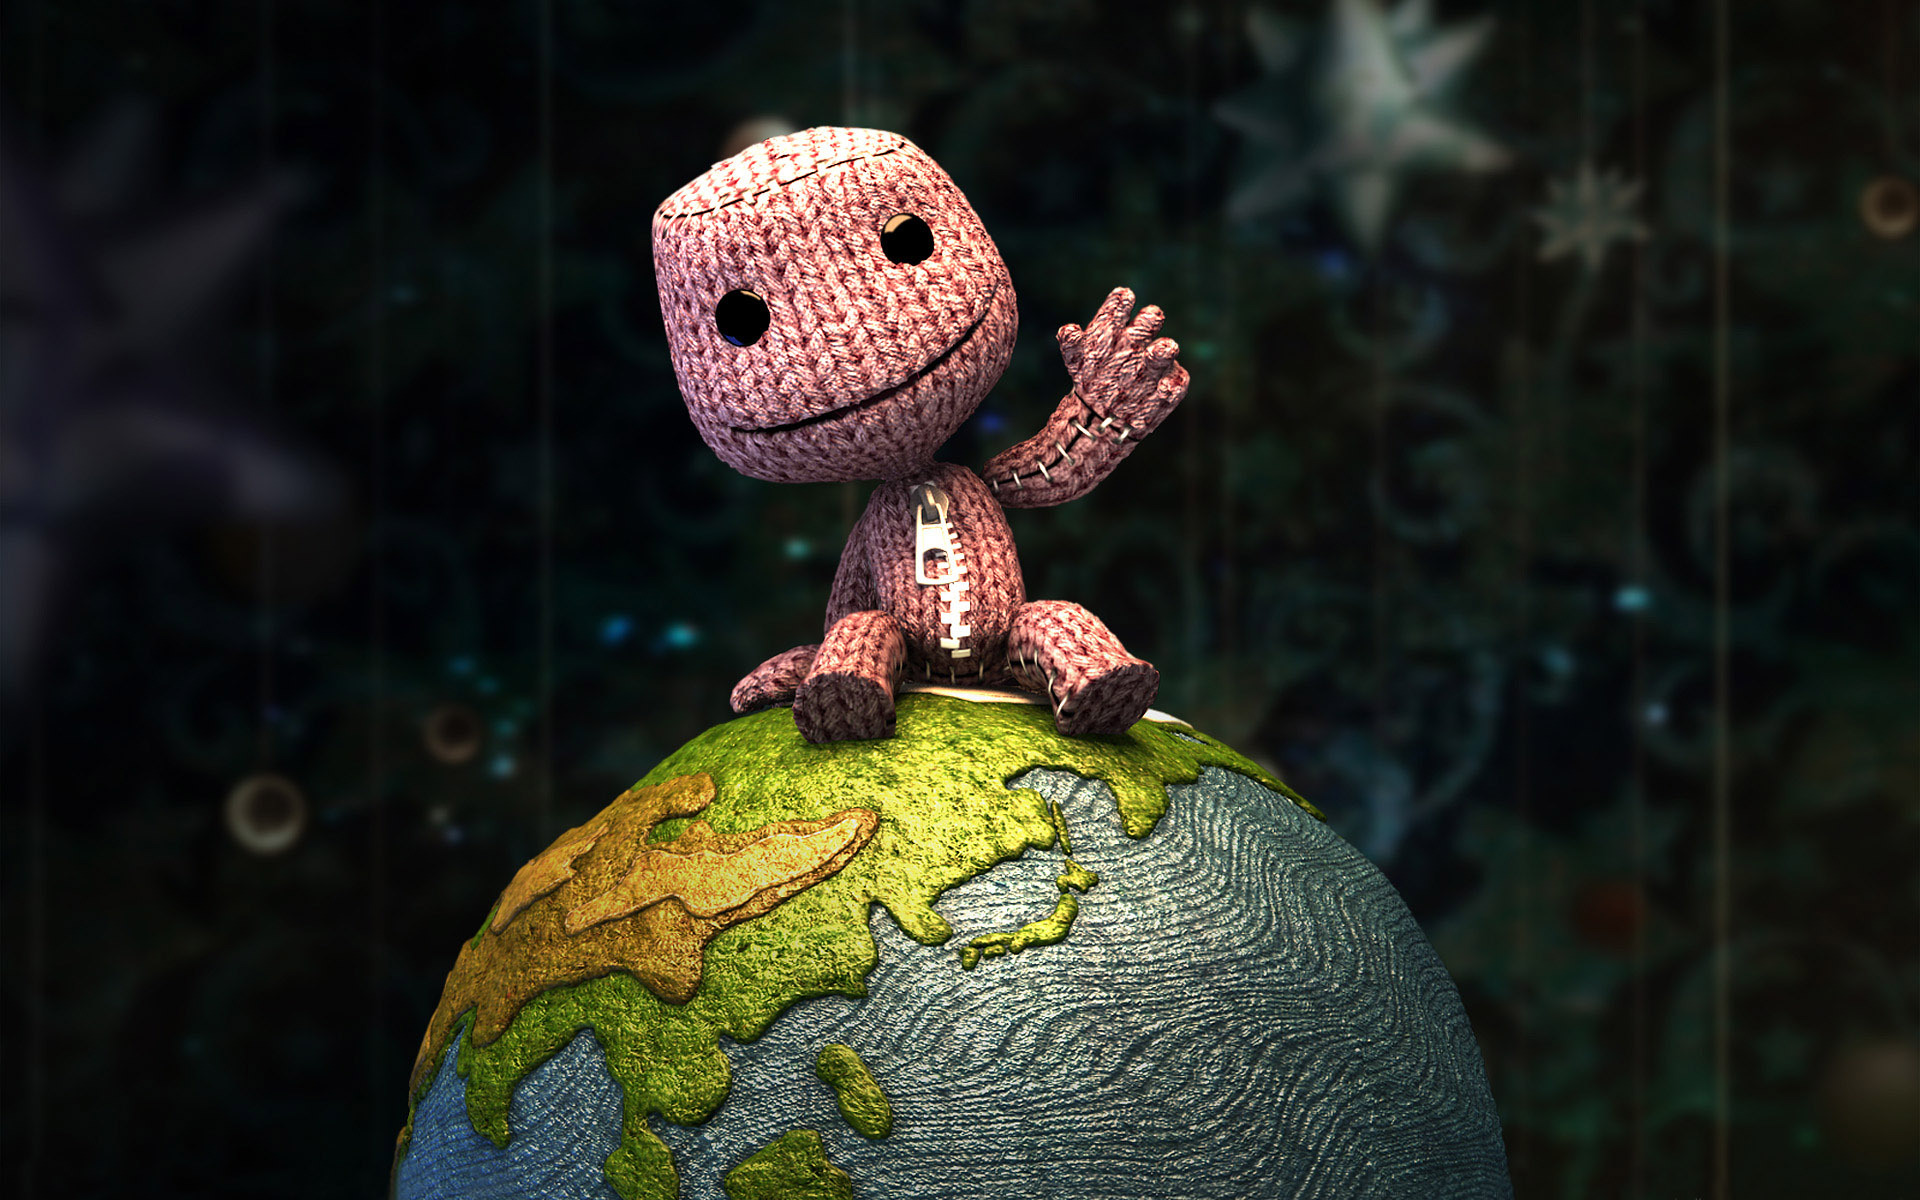 Media Molecule: LittleBigPlanet would have really benefited from Early Access